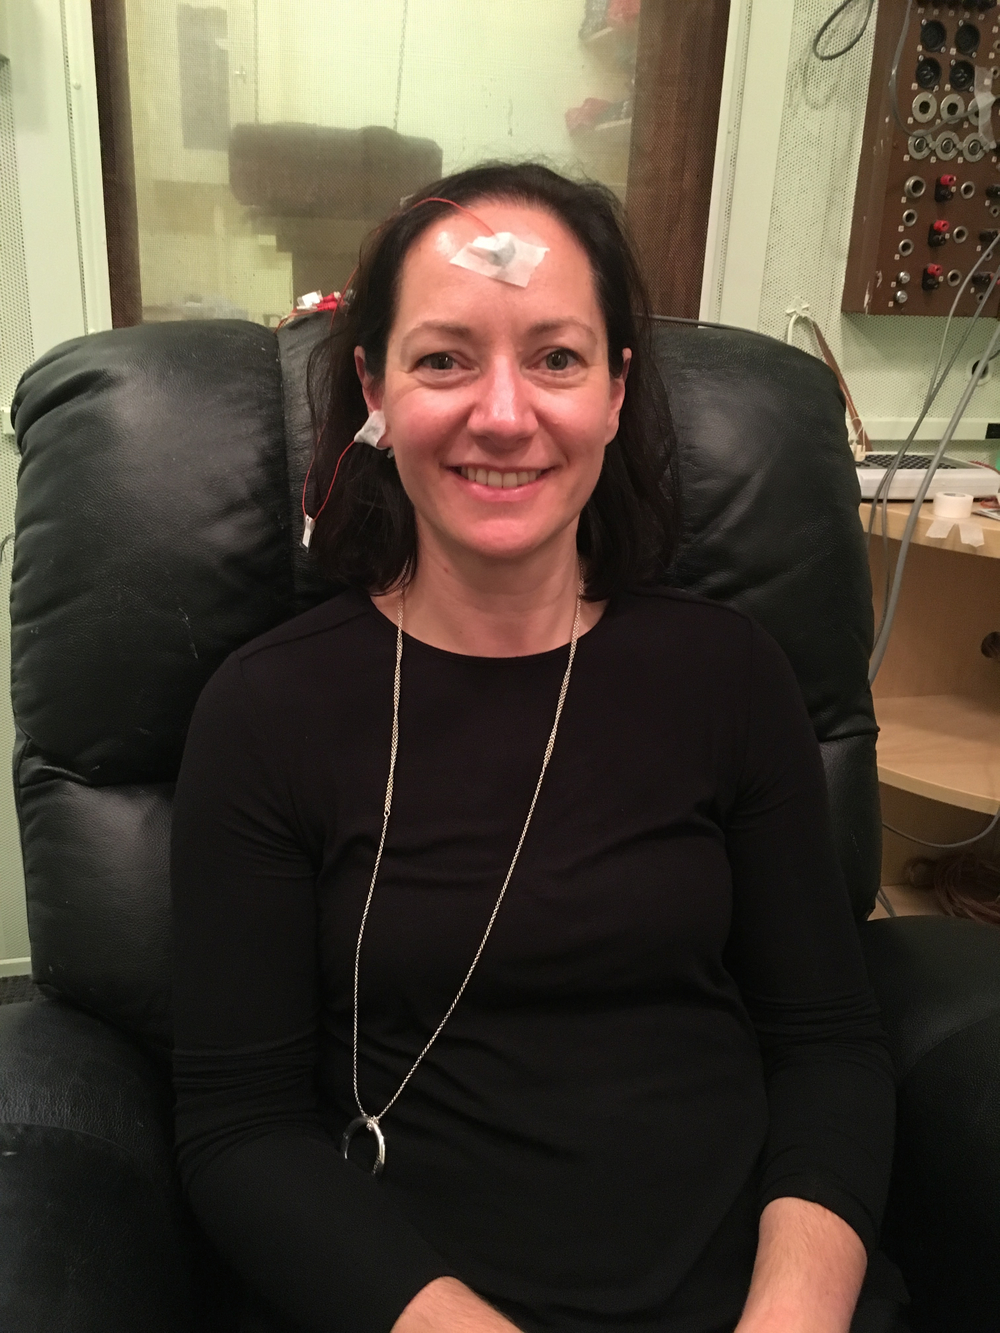 Anita experiencing auditory processing research the Dr Nina Kraus' Brainvolts Lab at Northwestern Univeristy